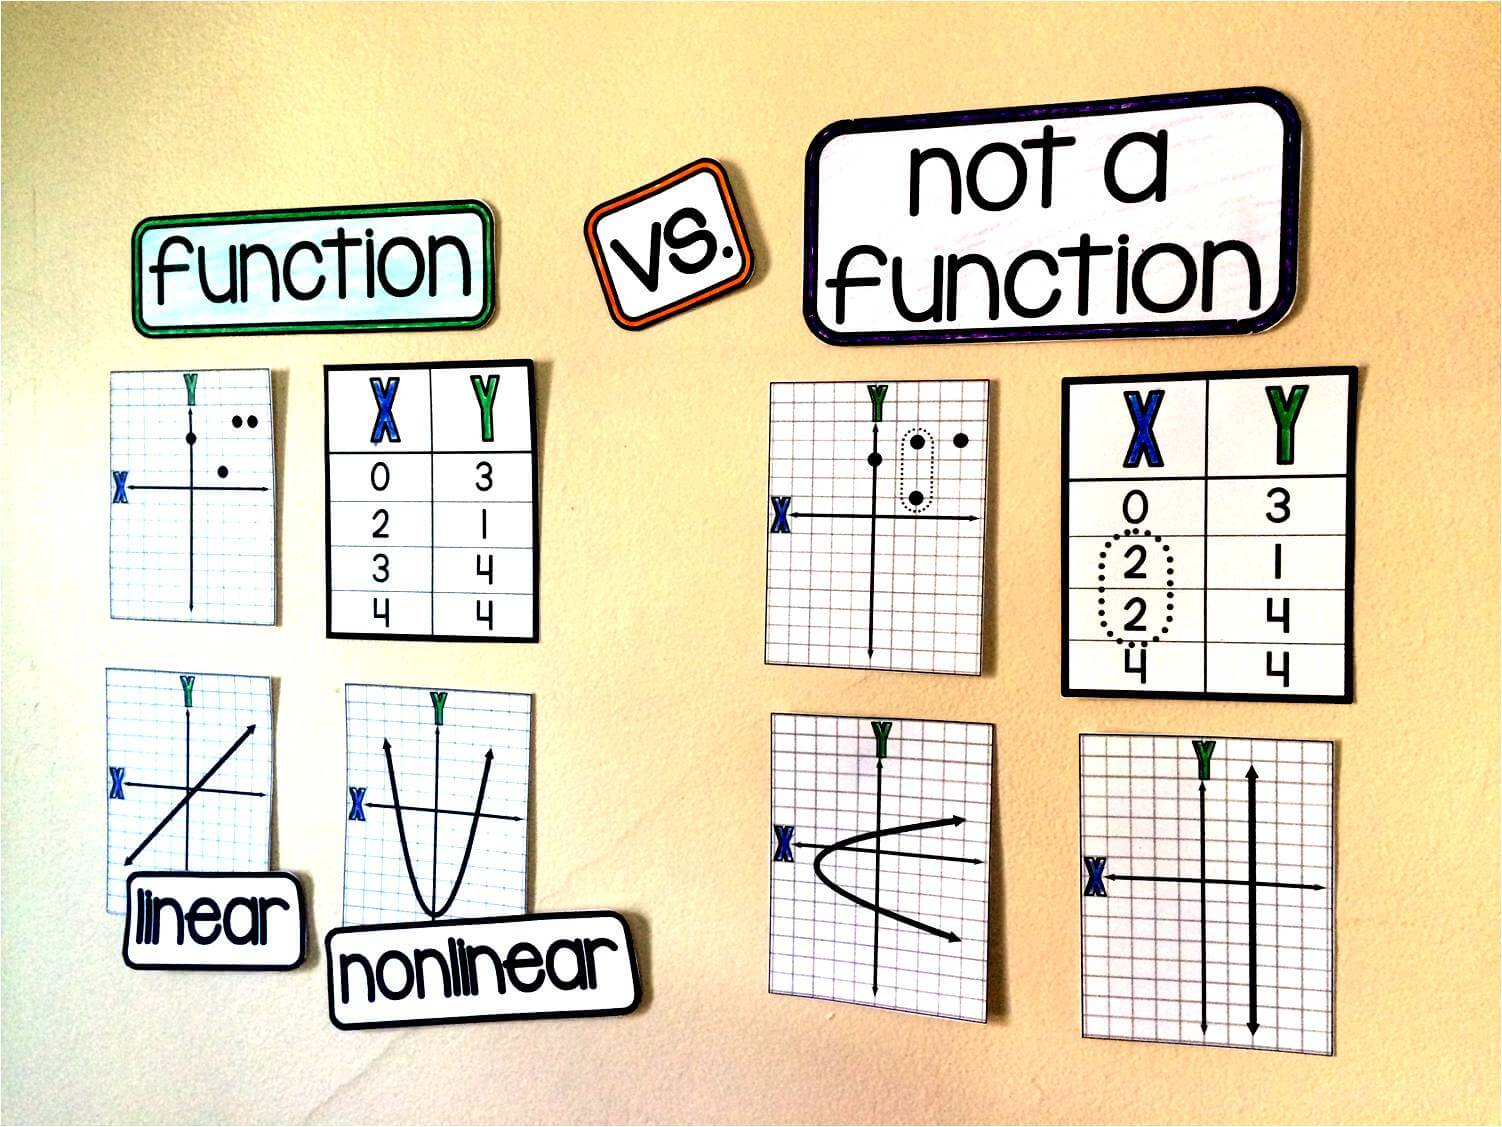 Scaffolded Math and Science: Middle School Math Word Wall Ideas